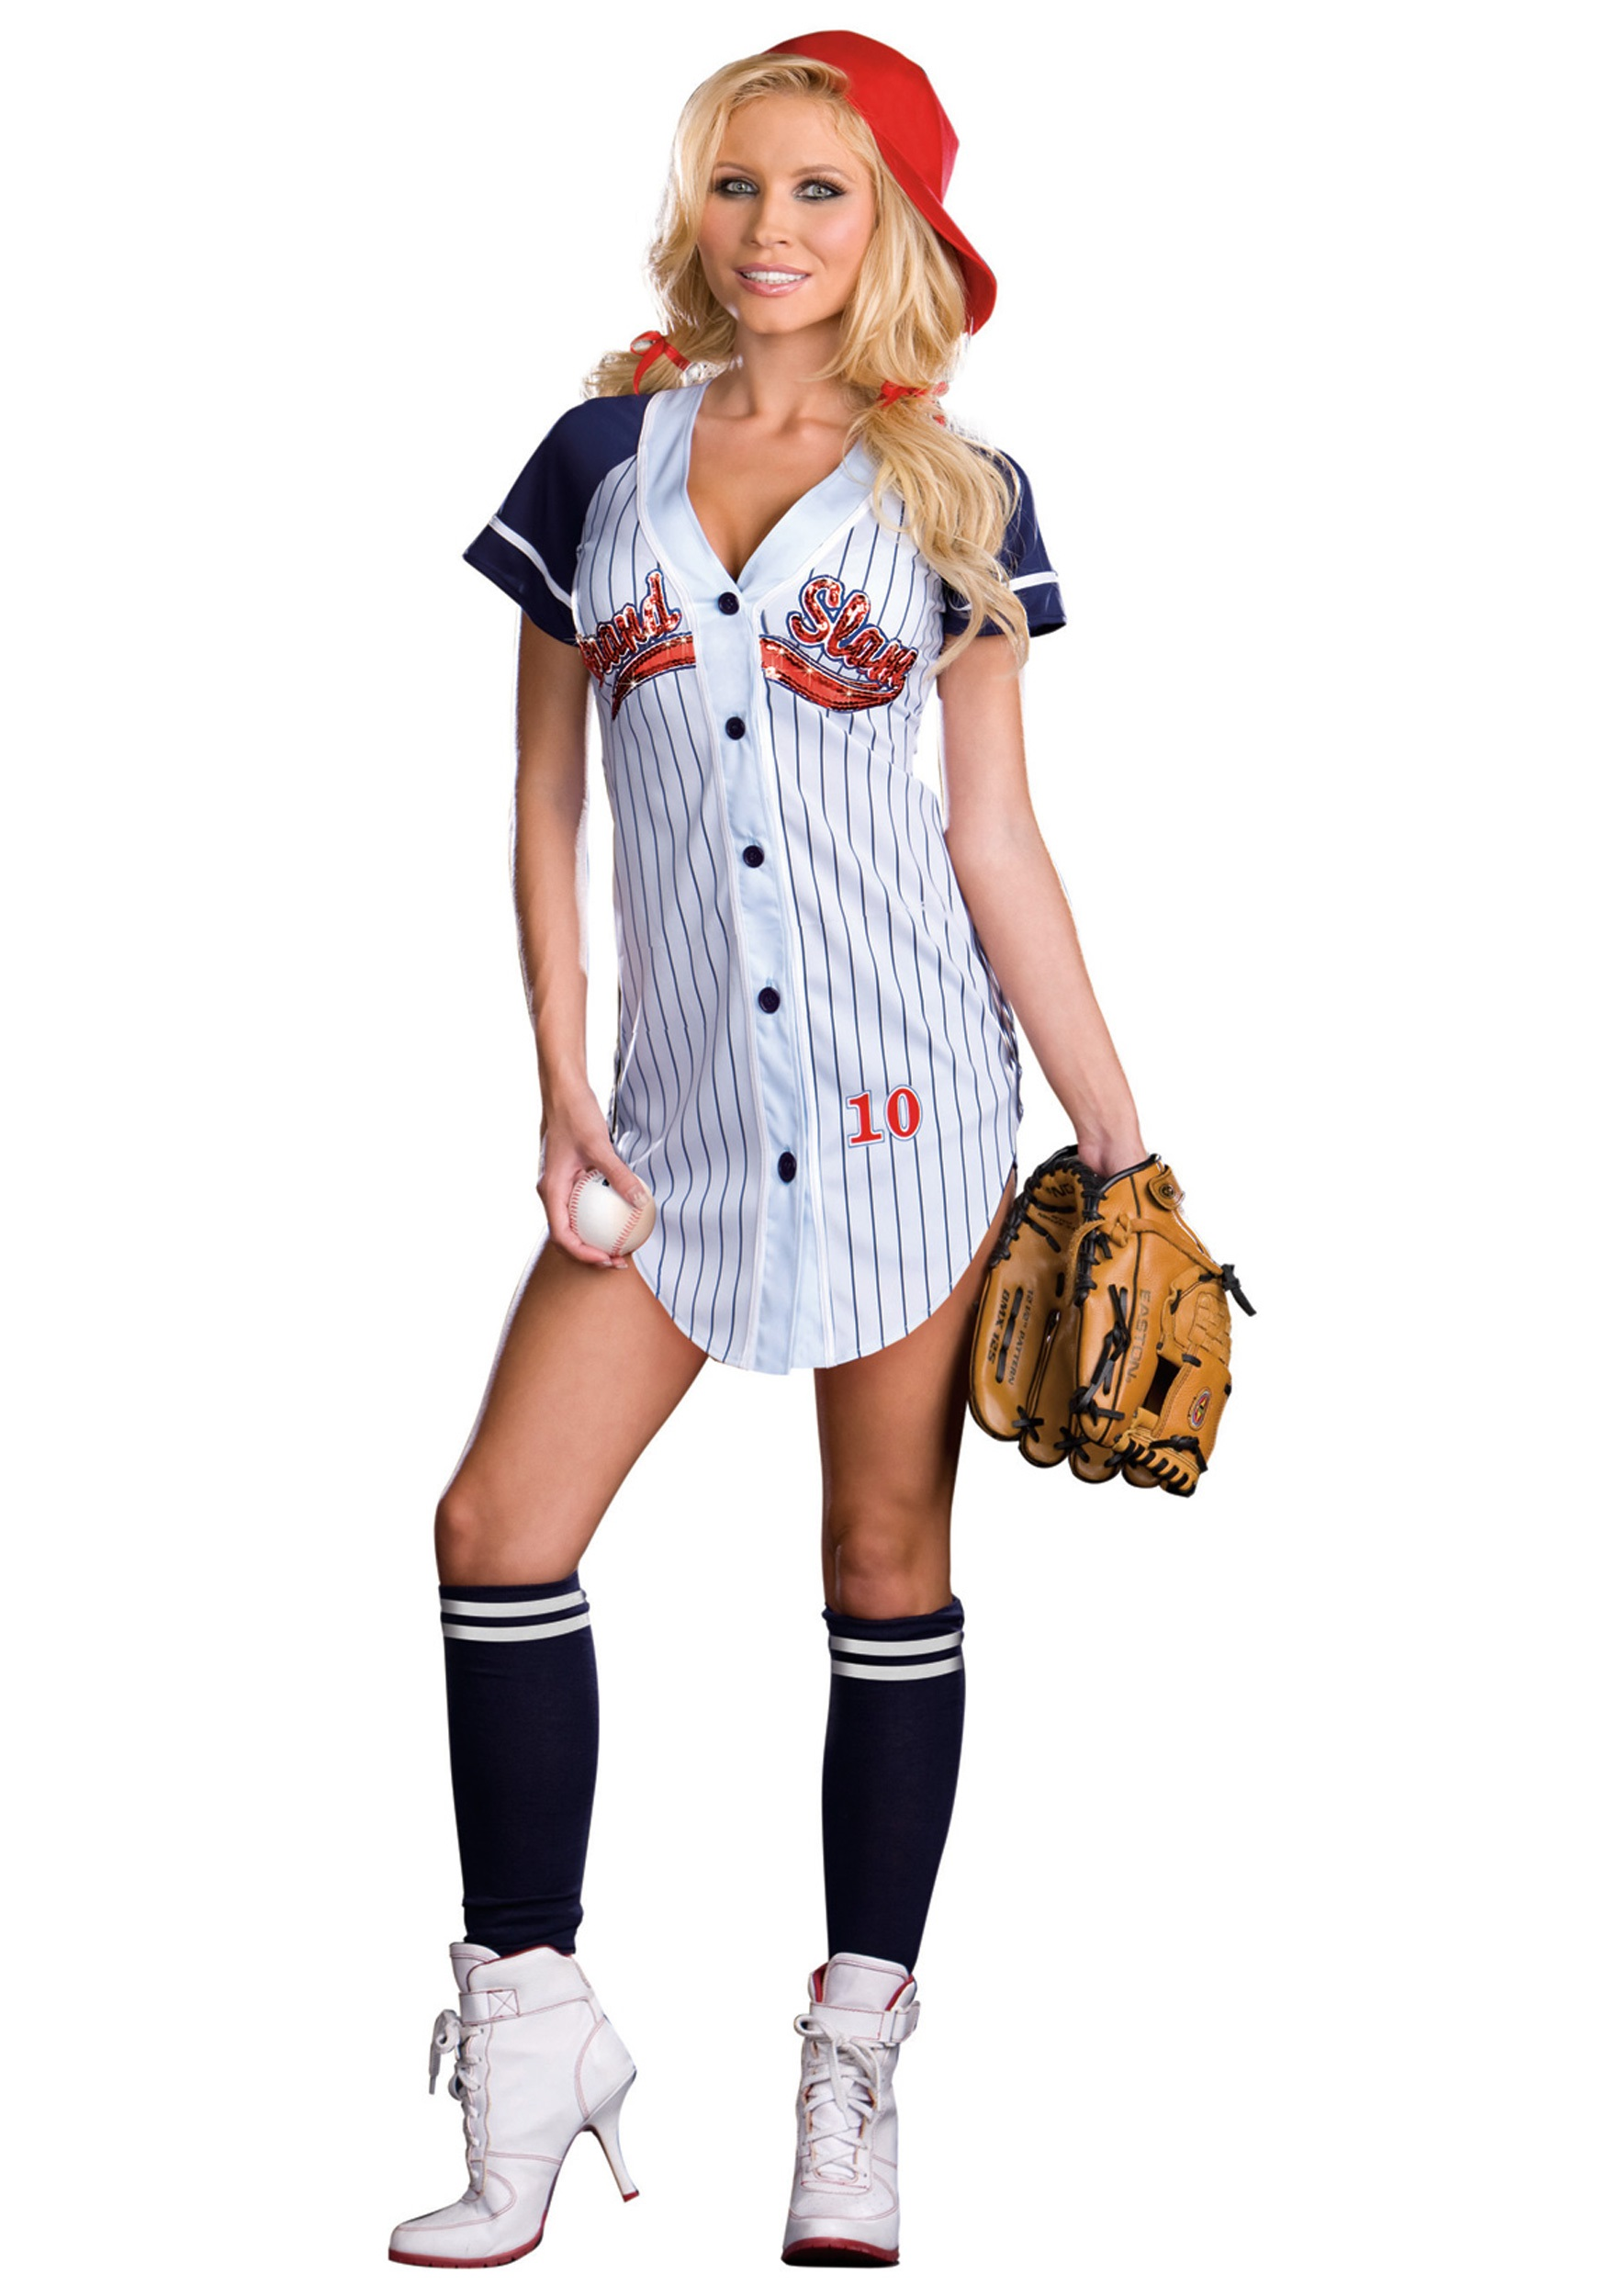 baseball costumes, jerseys & caps - halloweencostumes